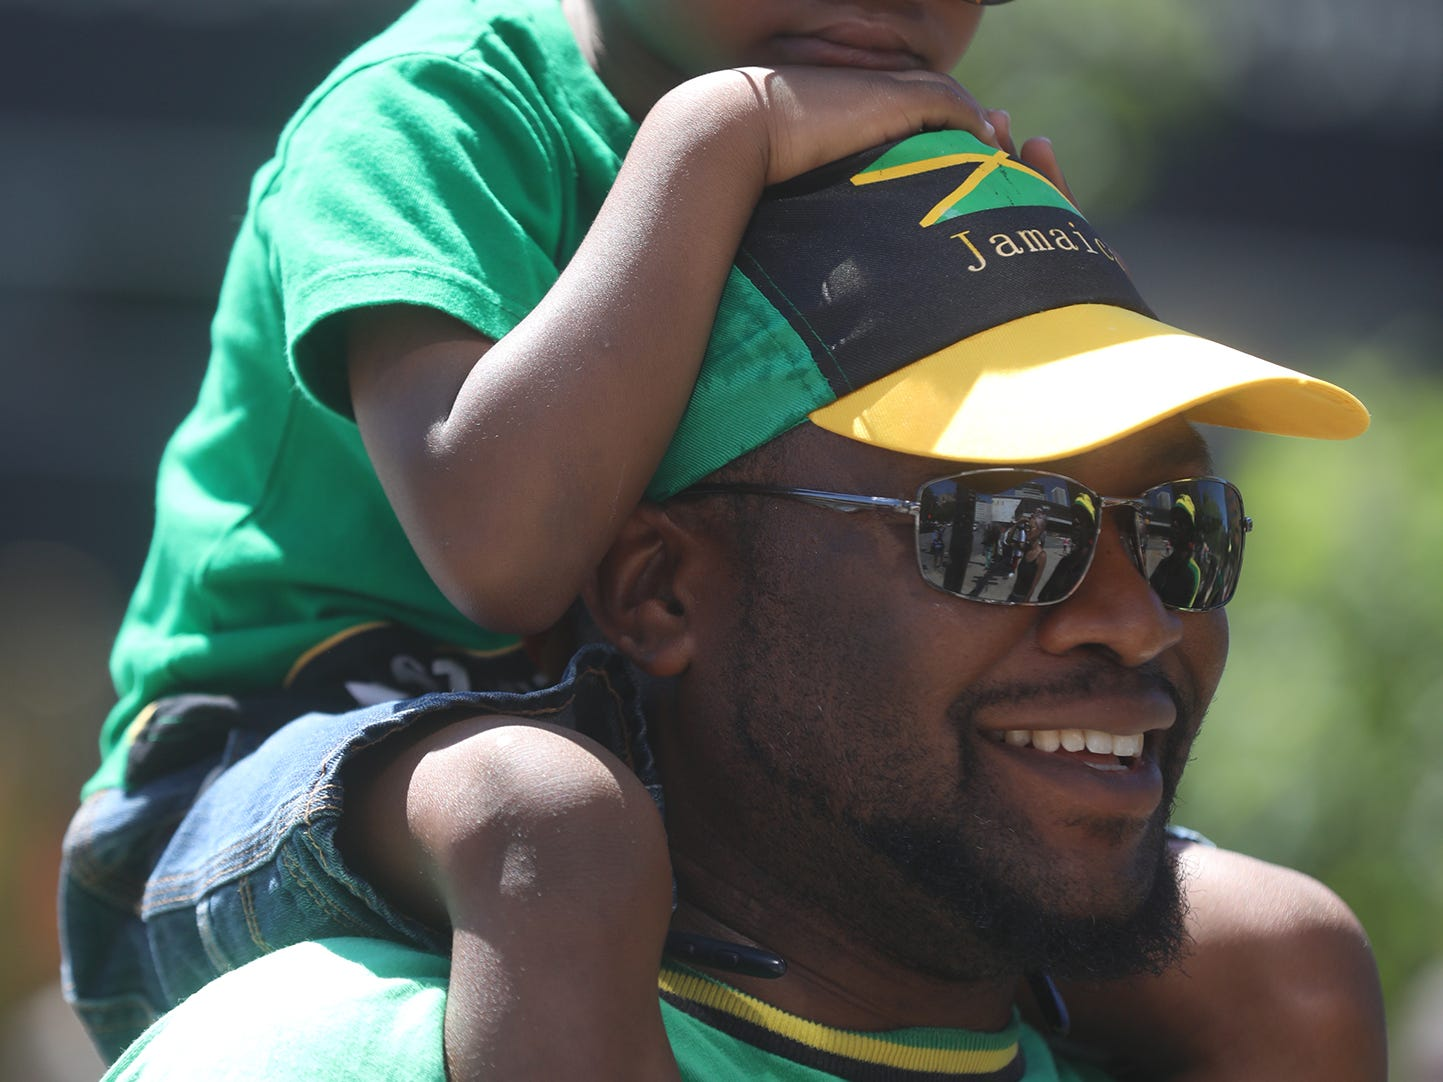 Kenzel Boxx, 5, sits on his father, Ronald's shoulders and watches Carifest parade go by them on Chestnut Street.